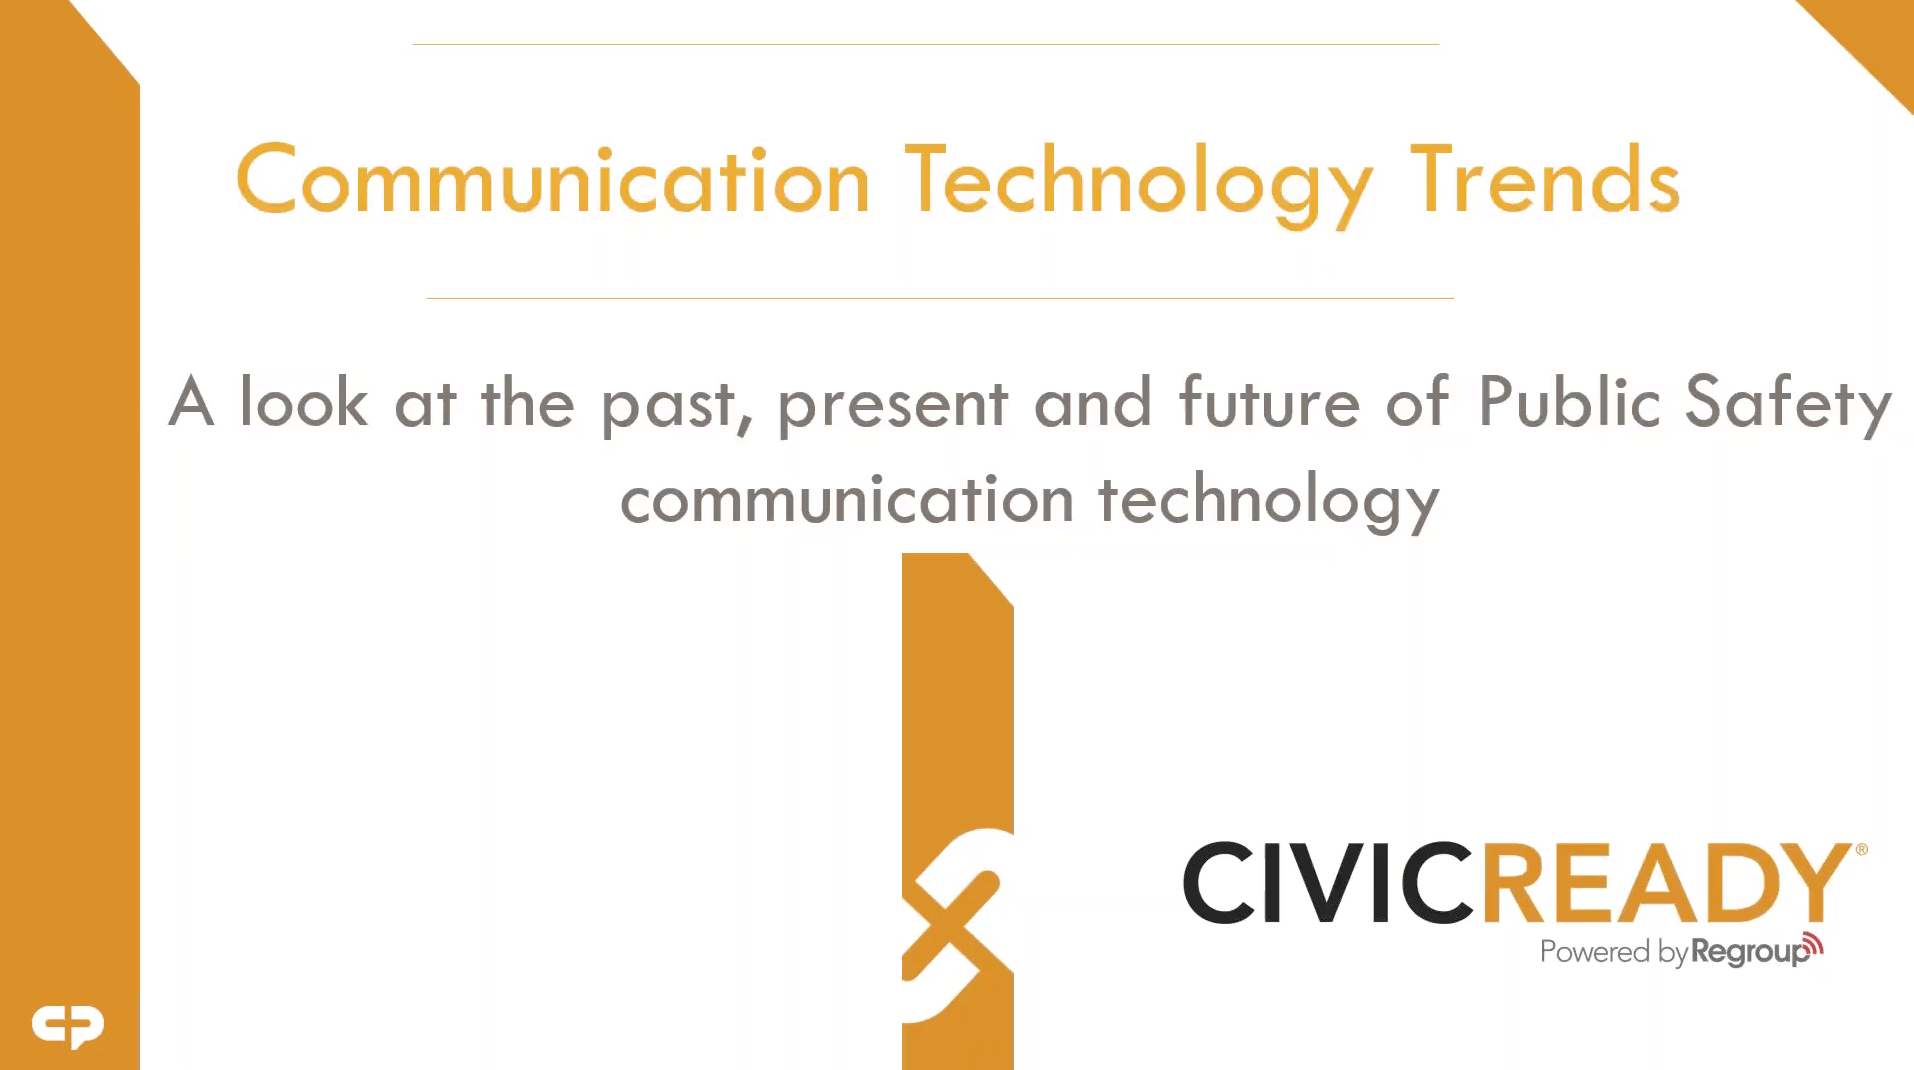 Communication Technology Trends in Public Safety